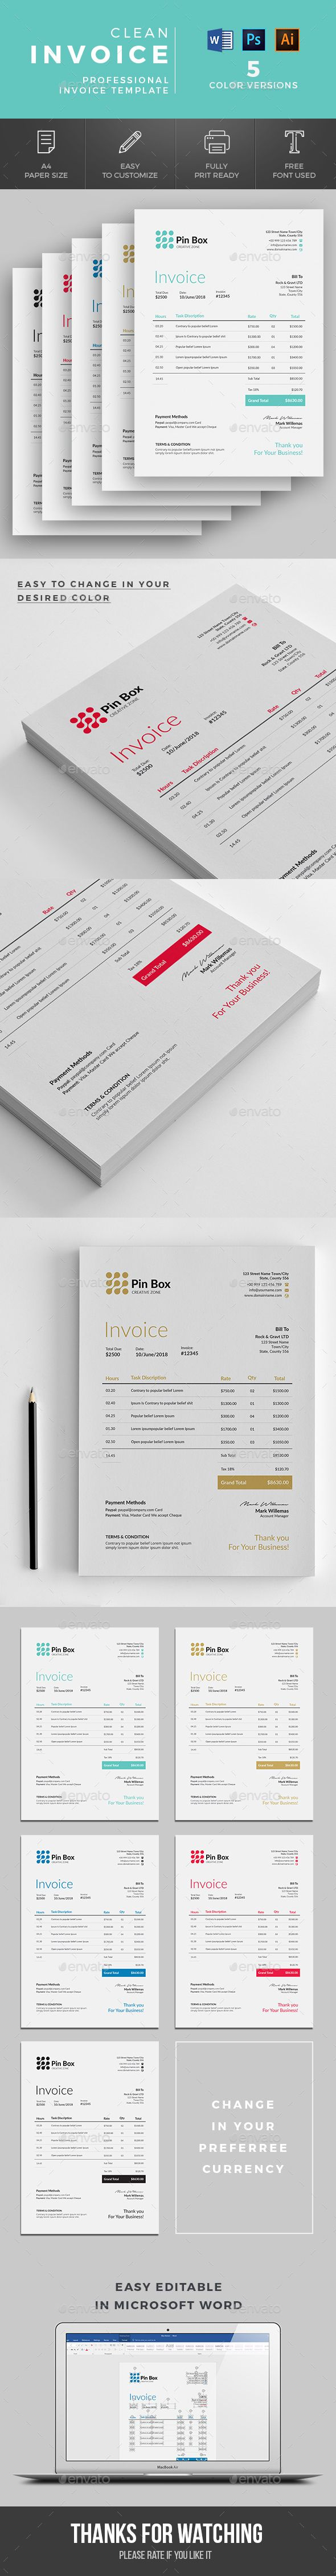 Ms Word Proposal Template Invoice  Pinterest  Template Proposal Templates And Typography Design